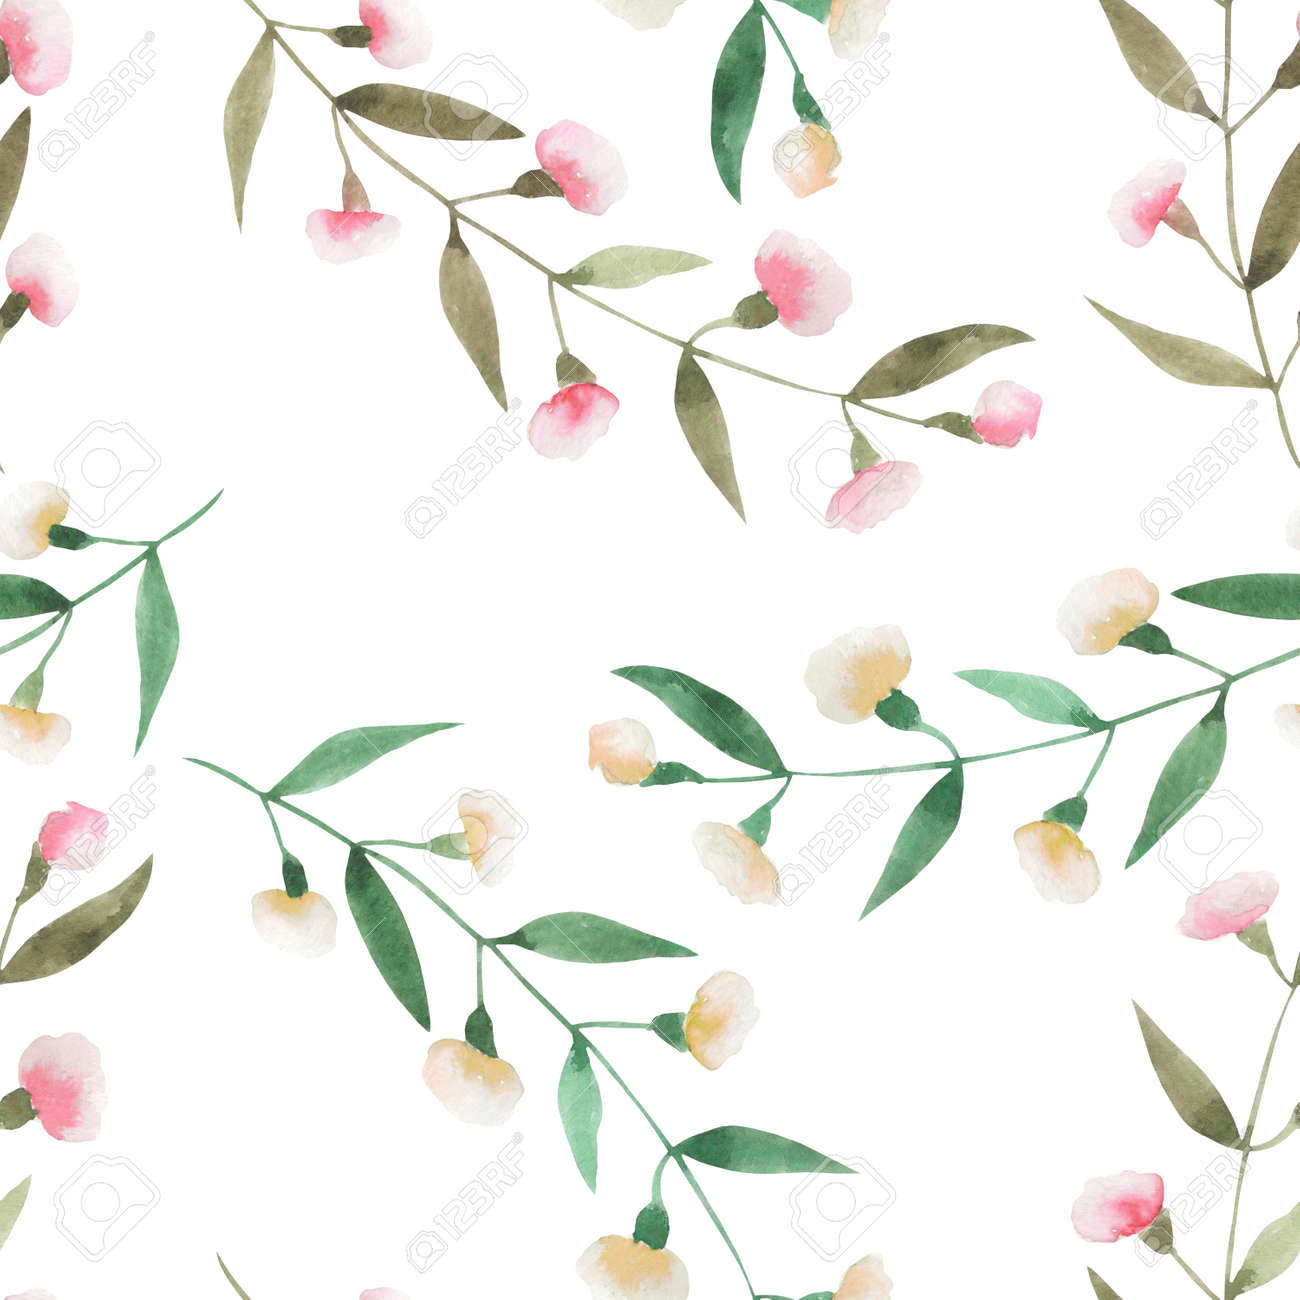 Seamless Floral Pattern With The Watercolor Simple Pink Abstract